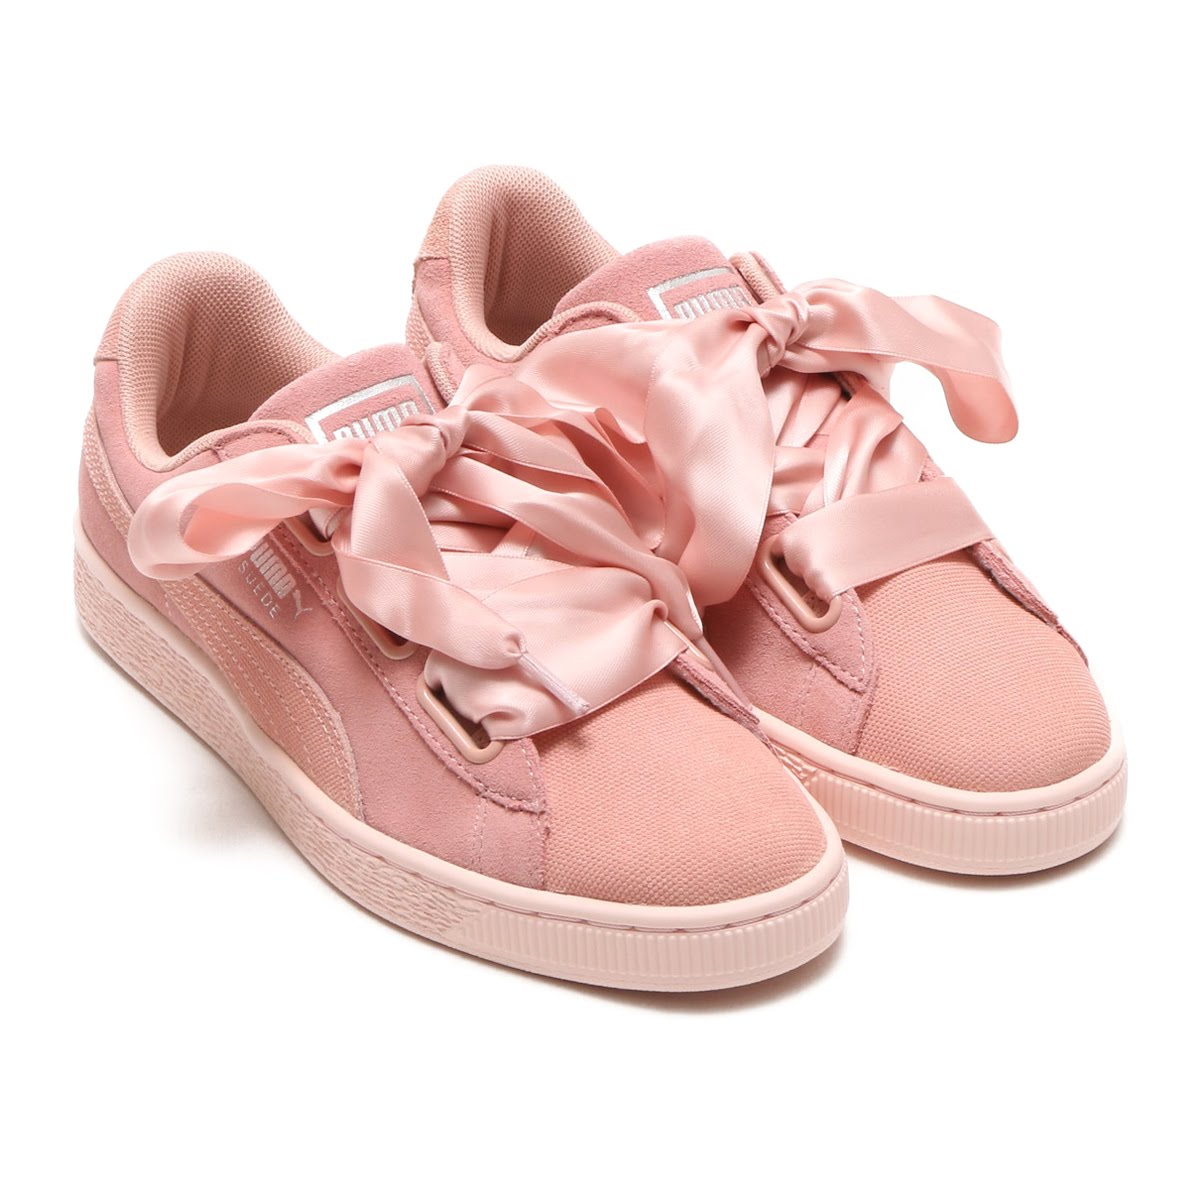 best sneakers 67bb0 a1440 PUMA SUEDE HEART PEBBLE WOMENS (Puma suede heart ぺ bell women) (PEACH  BEIGE) 18SU-I